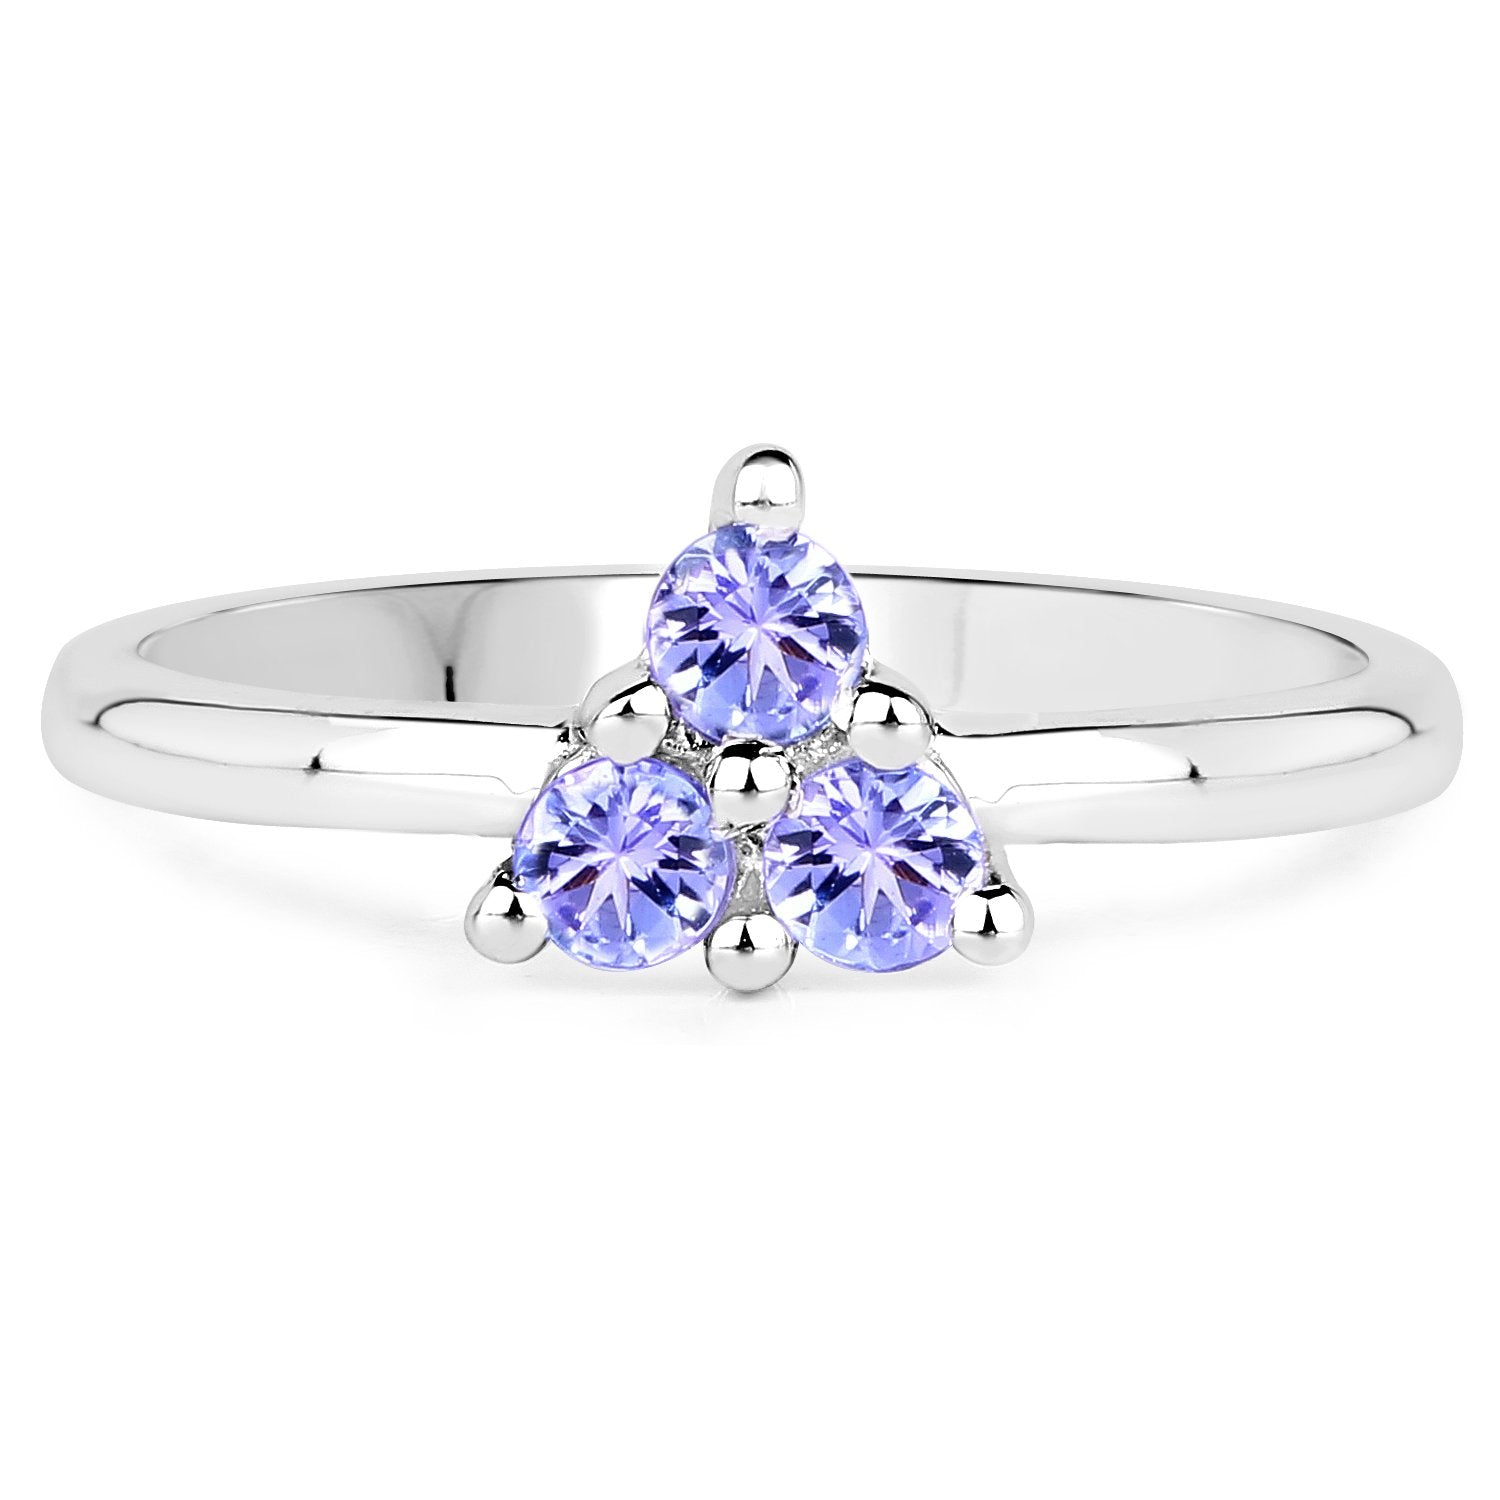 LoveHuang 0.27 Carats Genuine Tanzanite Trio Ring Solid .925 Sterling Silver With Rhodium Plating